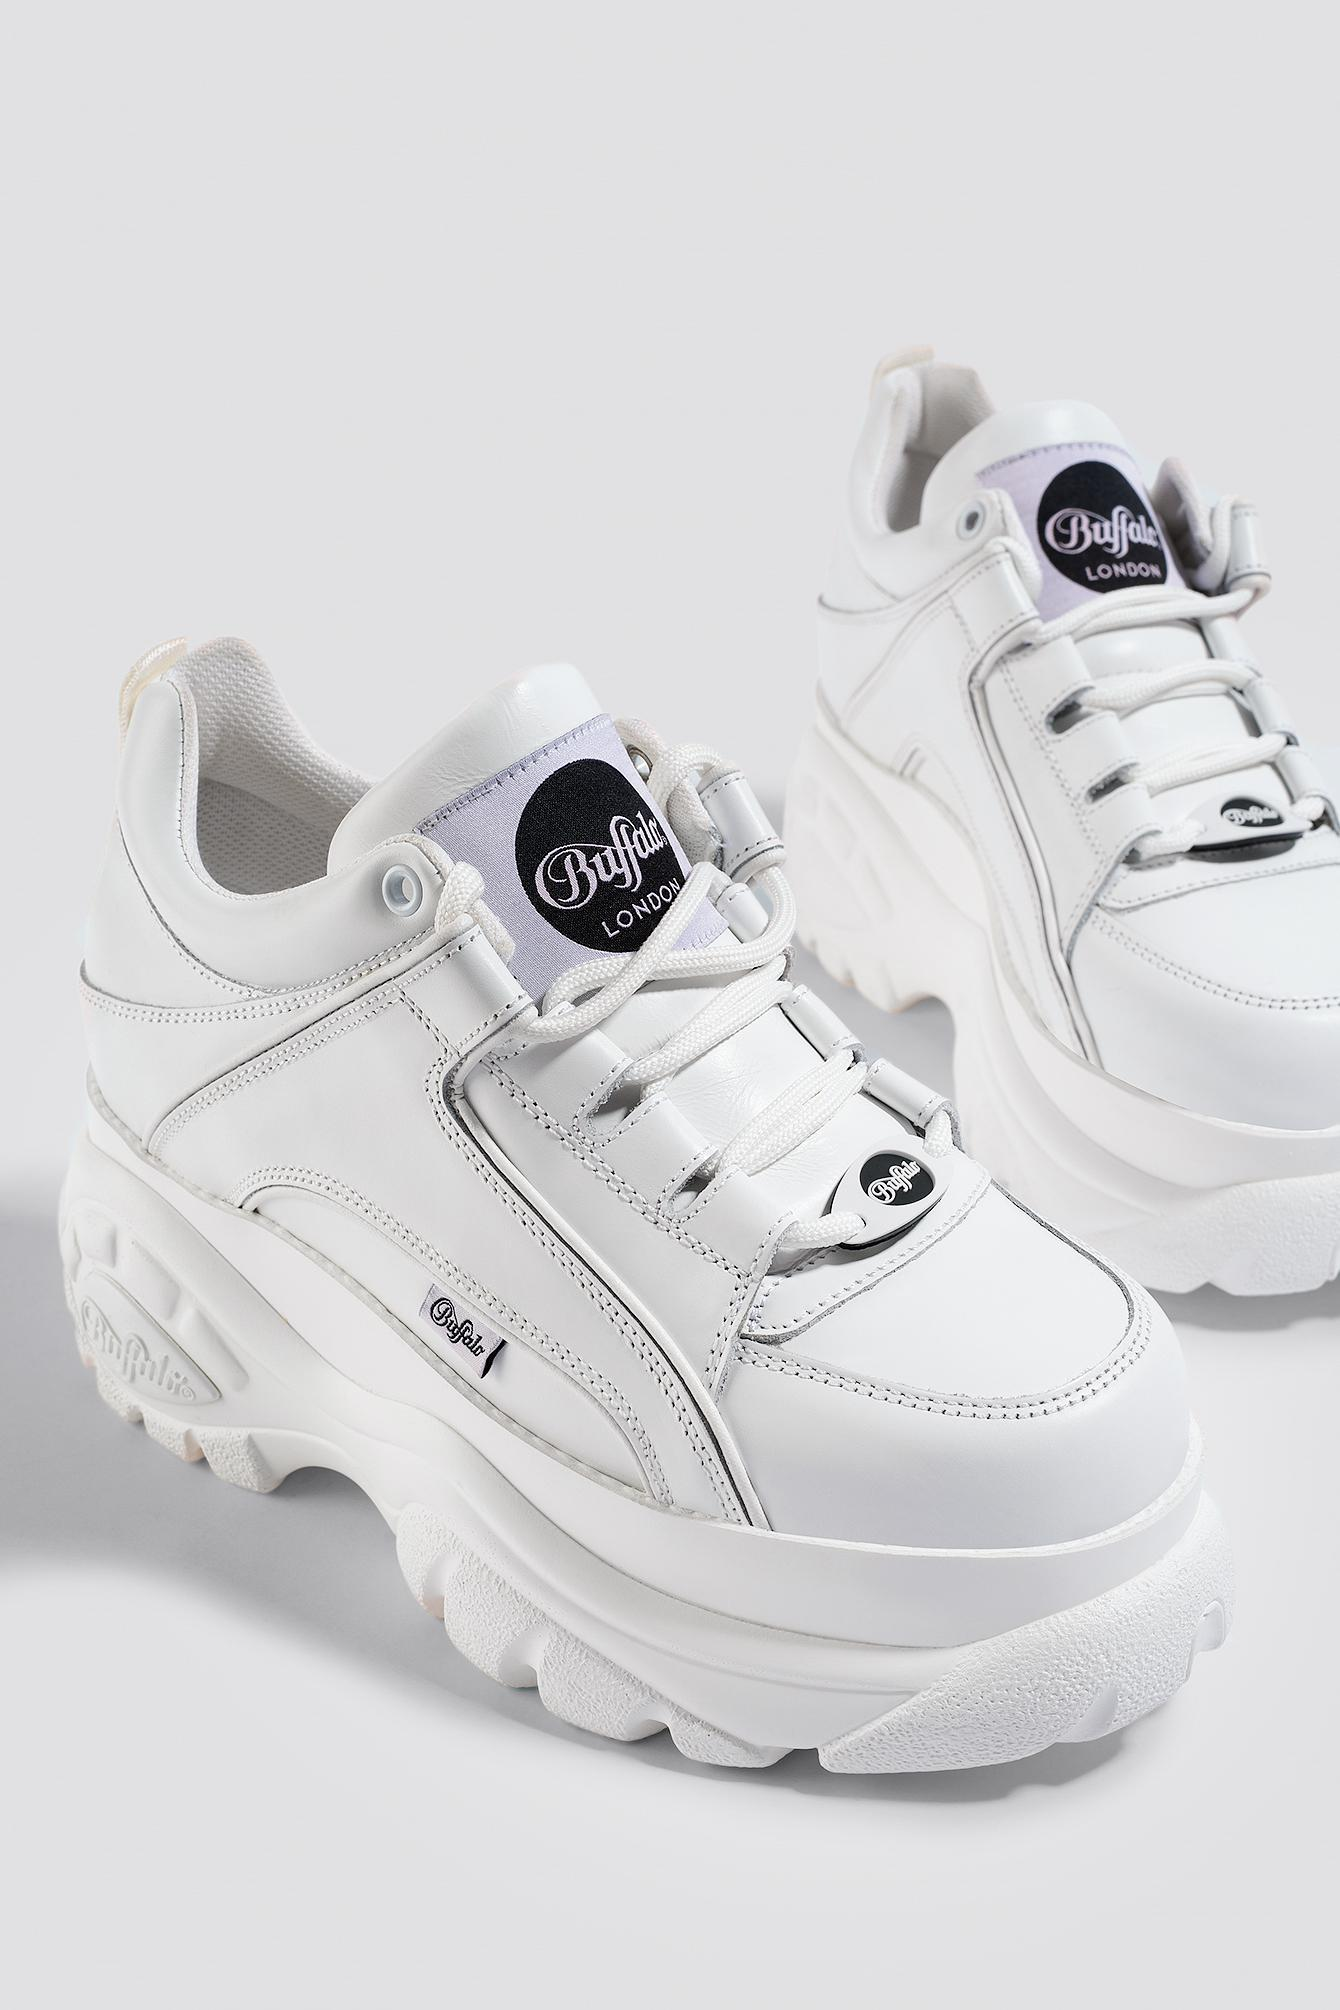 7fc67de869a London Classic Lowtop Platform Chunky Sneakers In White - White in Blanco 01